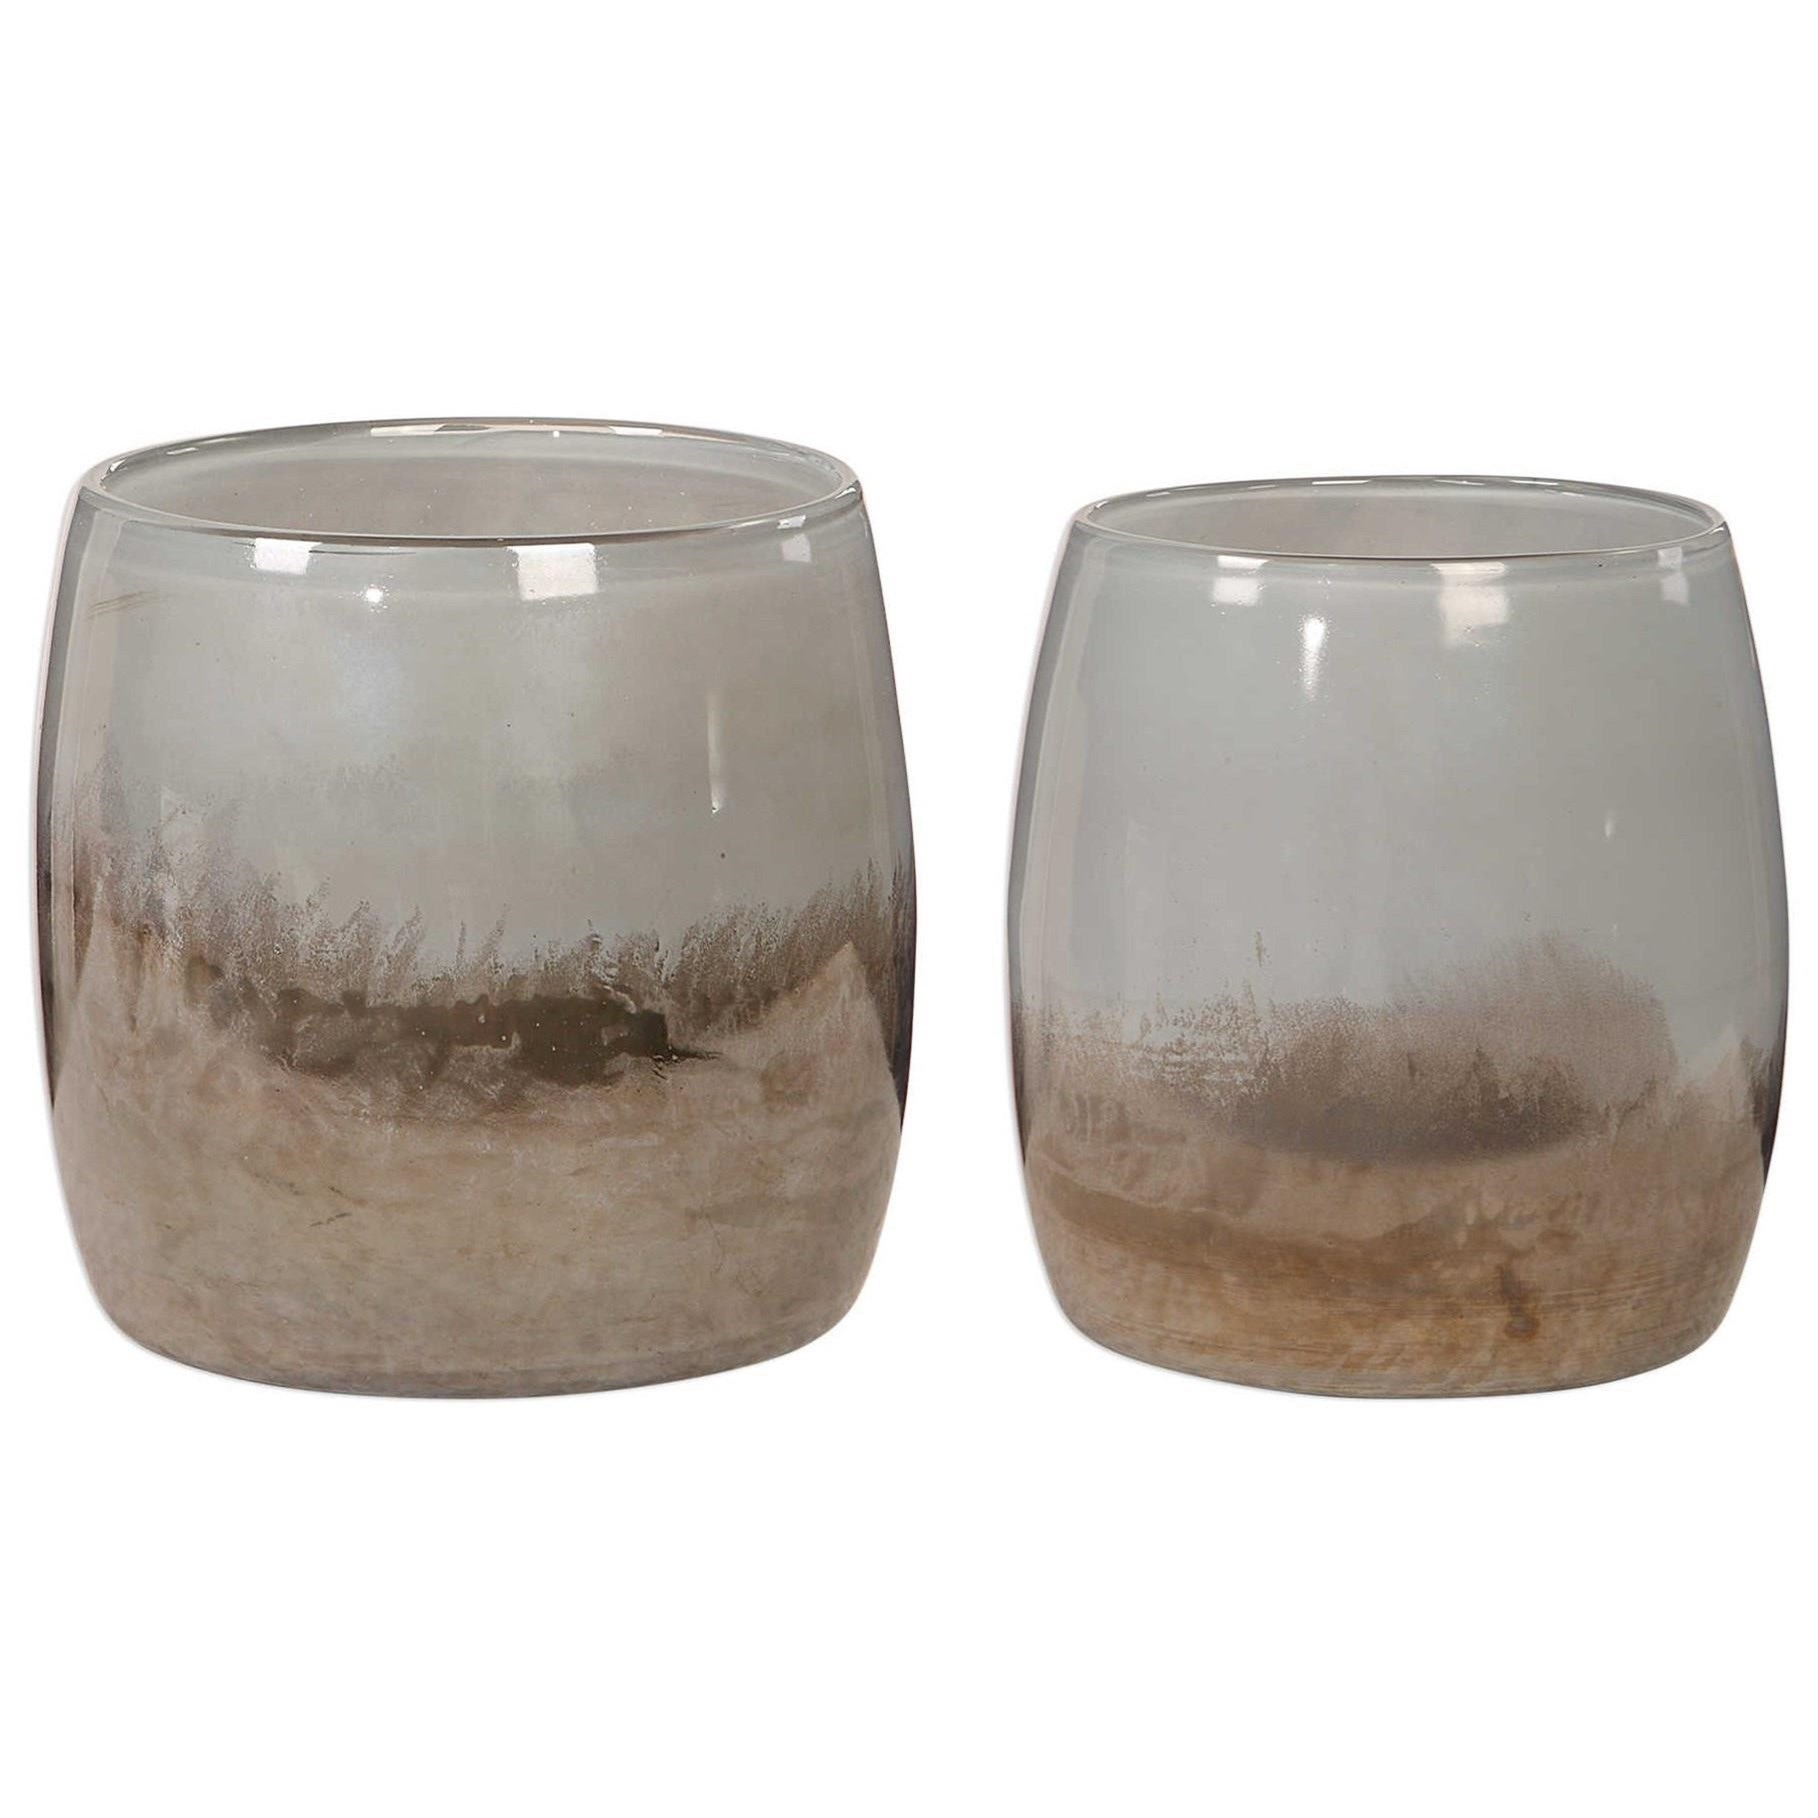 Accessories Tinley Blown Glass Bowls, S/2 by Uttermost at Dunk & Bright Furniture